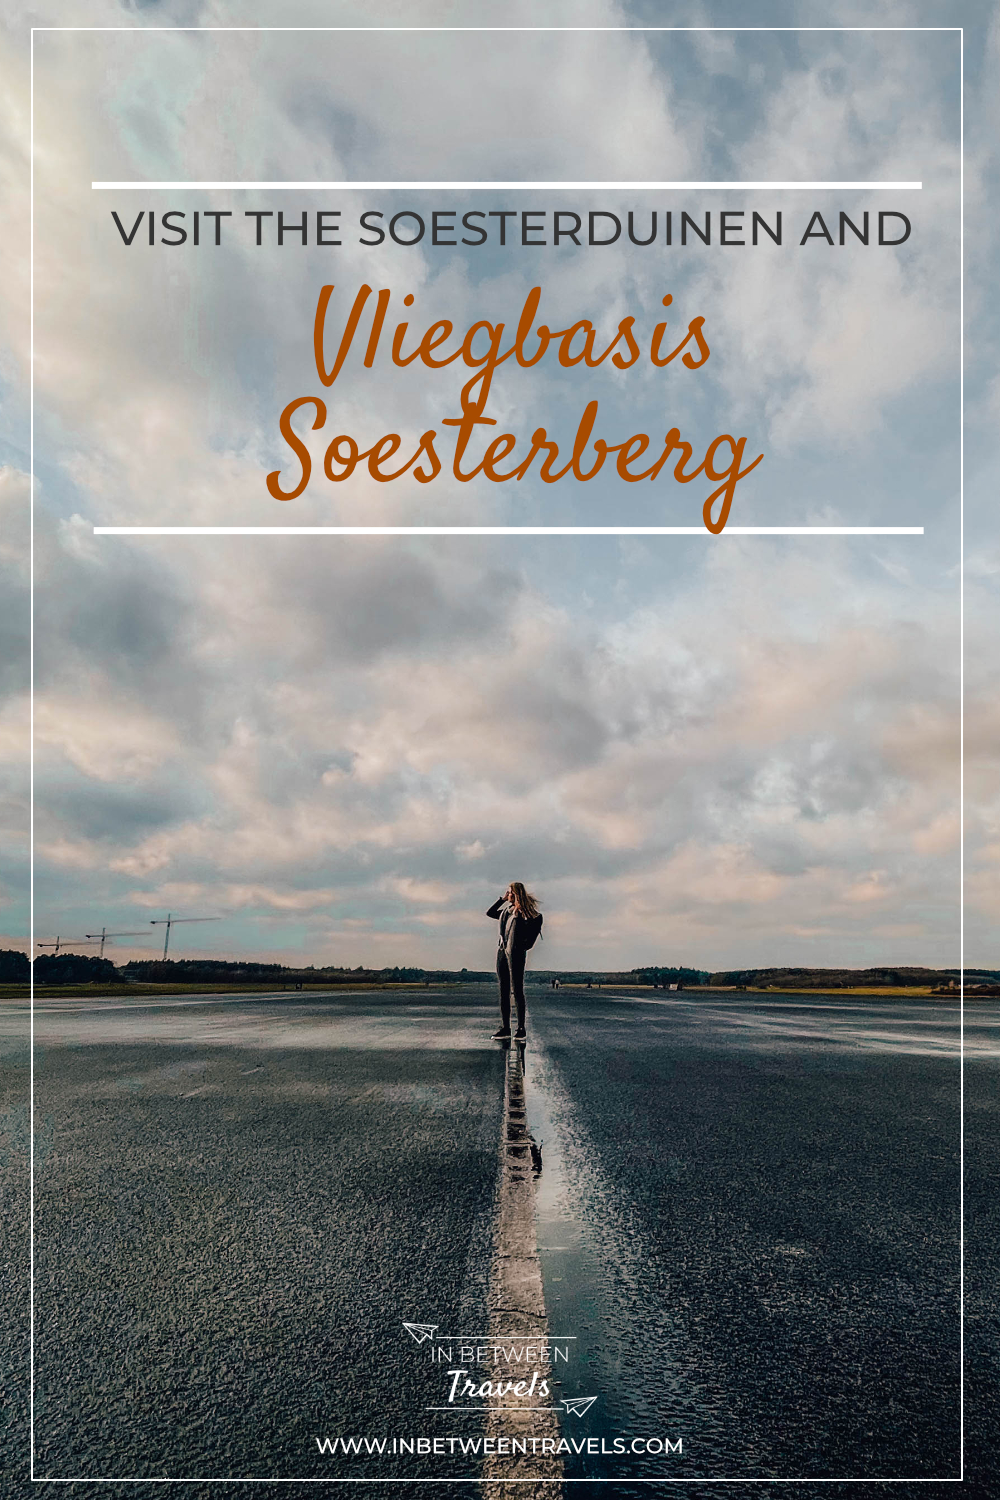 Soesterduinen and Vliegbasis Soesterberg (Flightbasis): A day walk in Utrecht Province, Netherlands